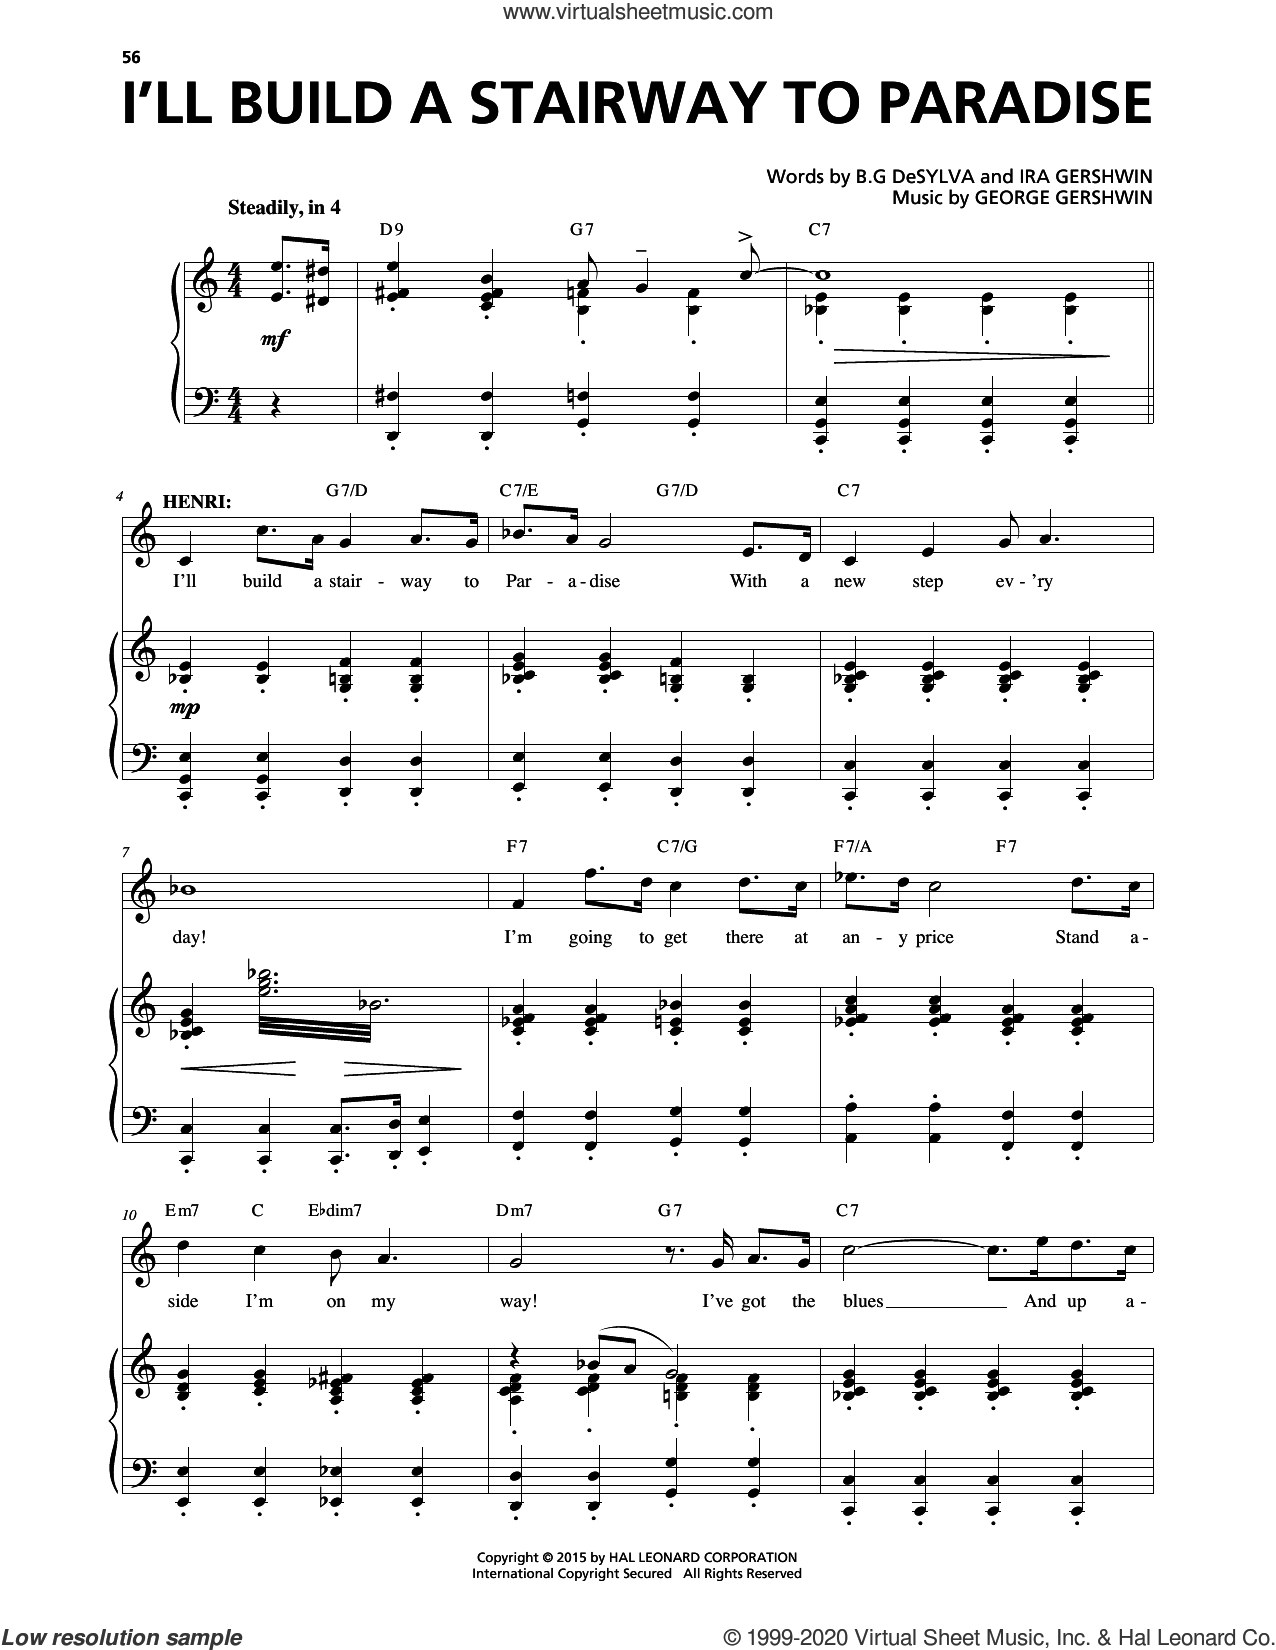 I'll Build A Stairway To Paradise (from An American In Paris) sheet music for voice and piano by George Gershwin, George Gershwin & Ira Gershwin and Ira Gershwin, intermediate skill level